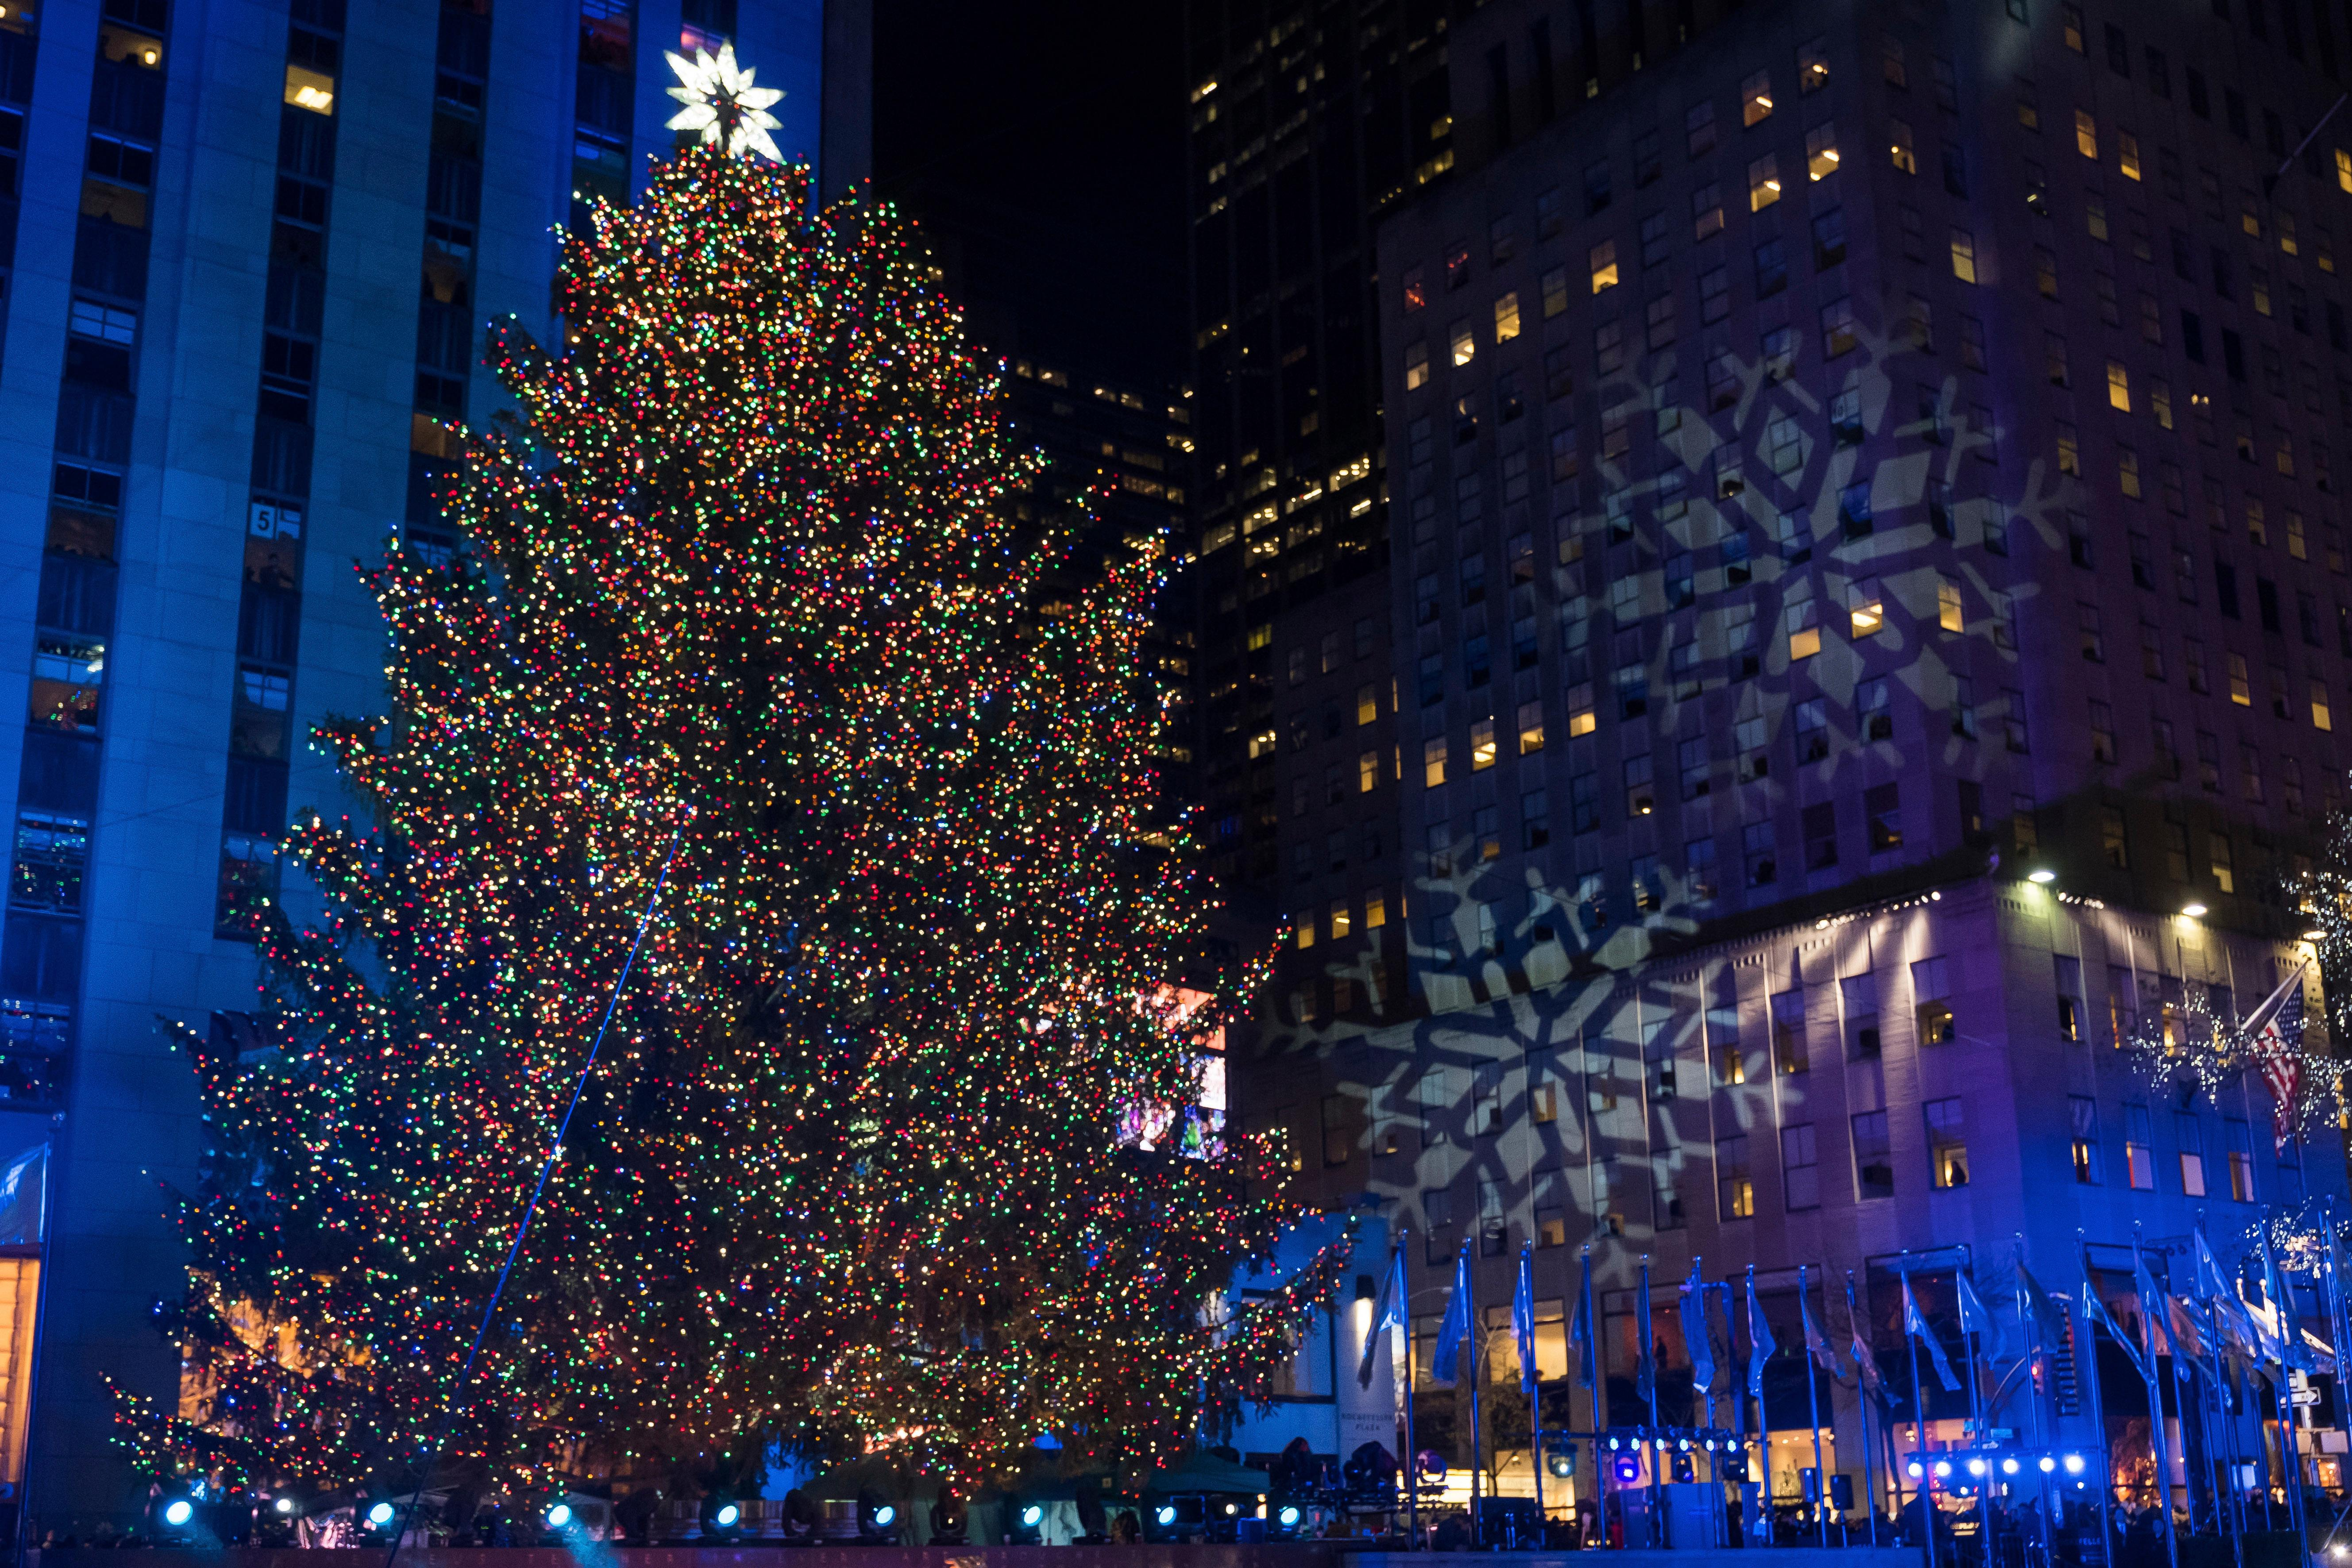 The Rockefeller Center Christmas Tree Is Lit During The 85Th